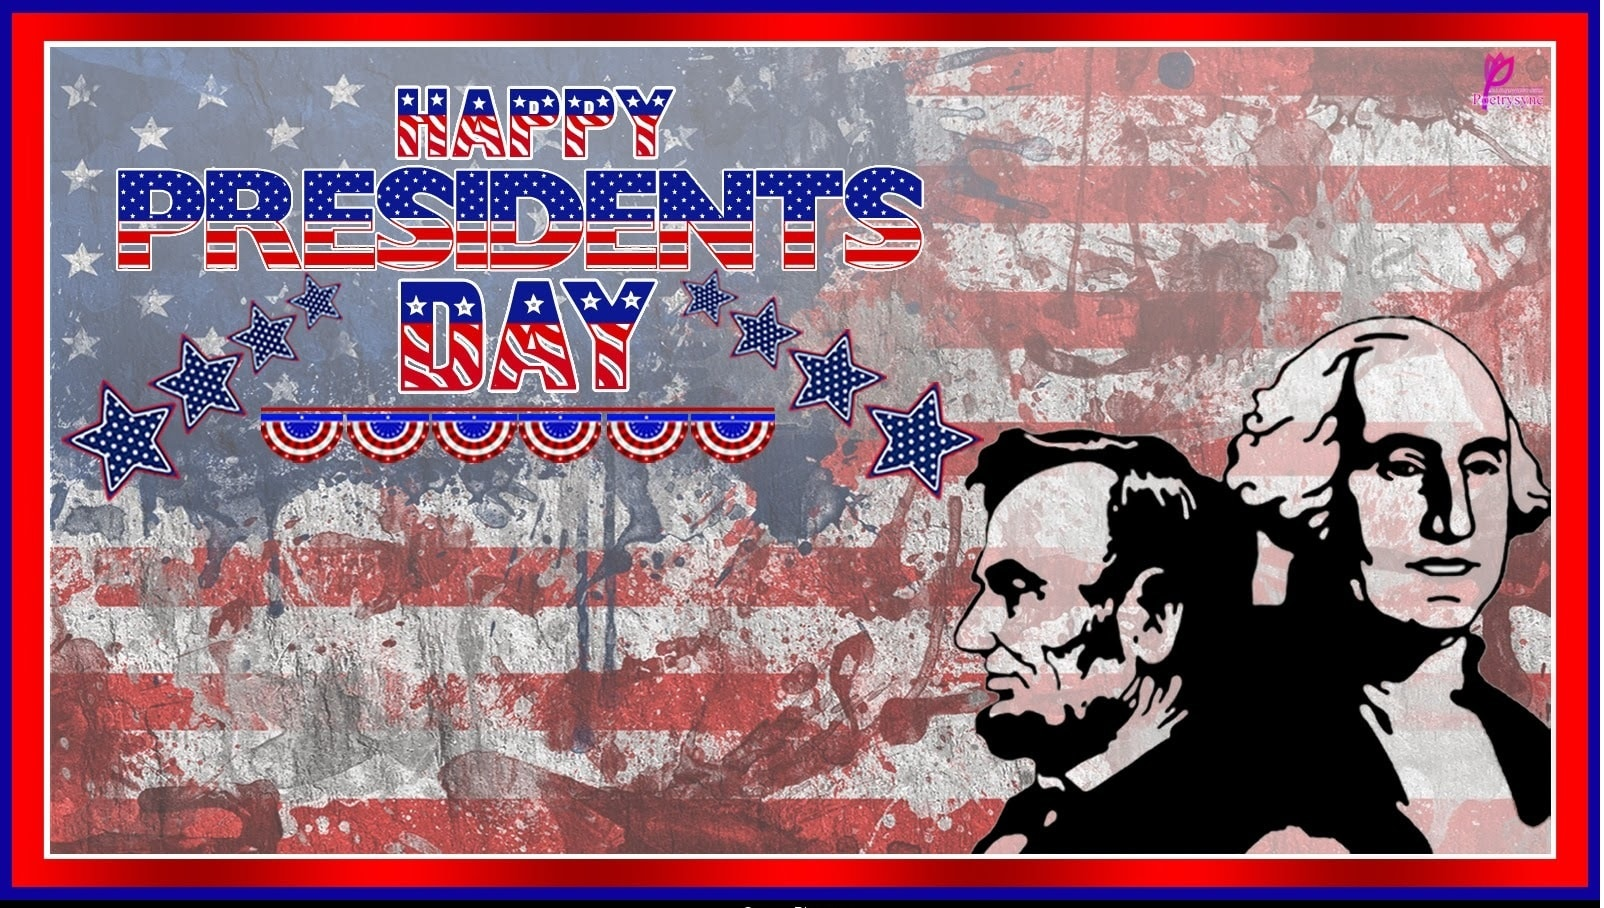 Happy Presidents Day 2018 Images, Quotes, Messages